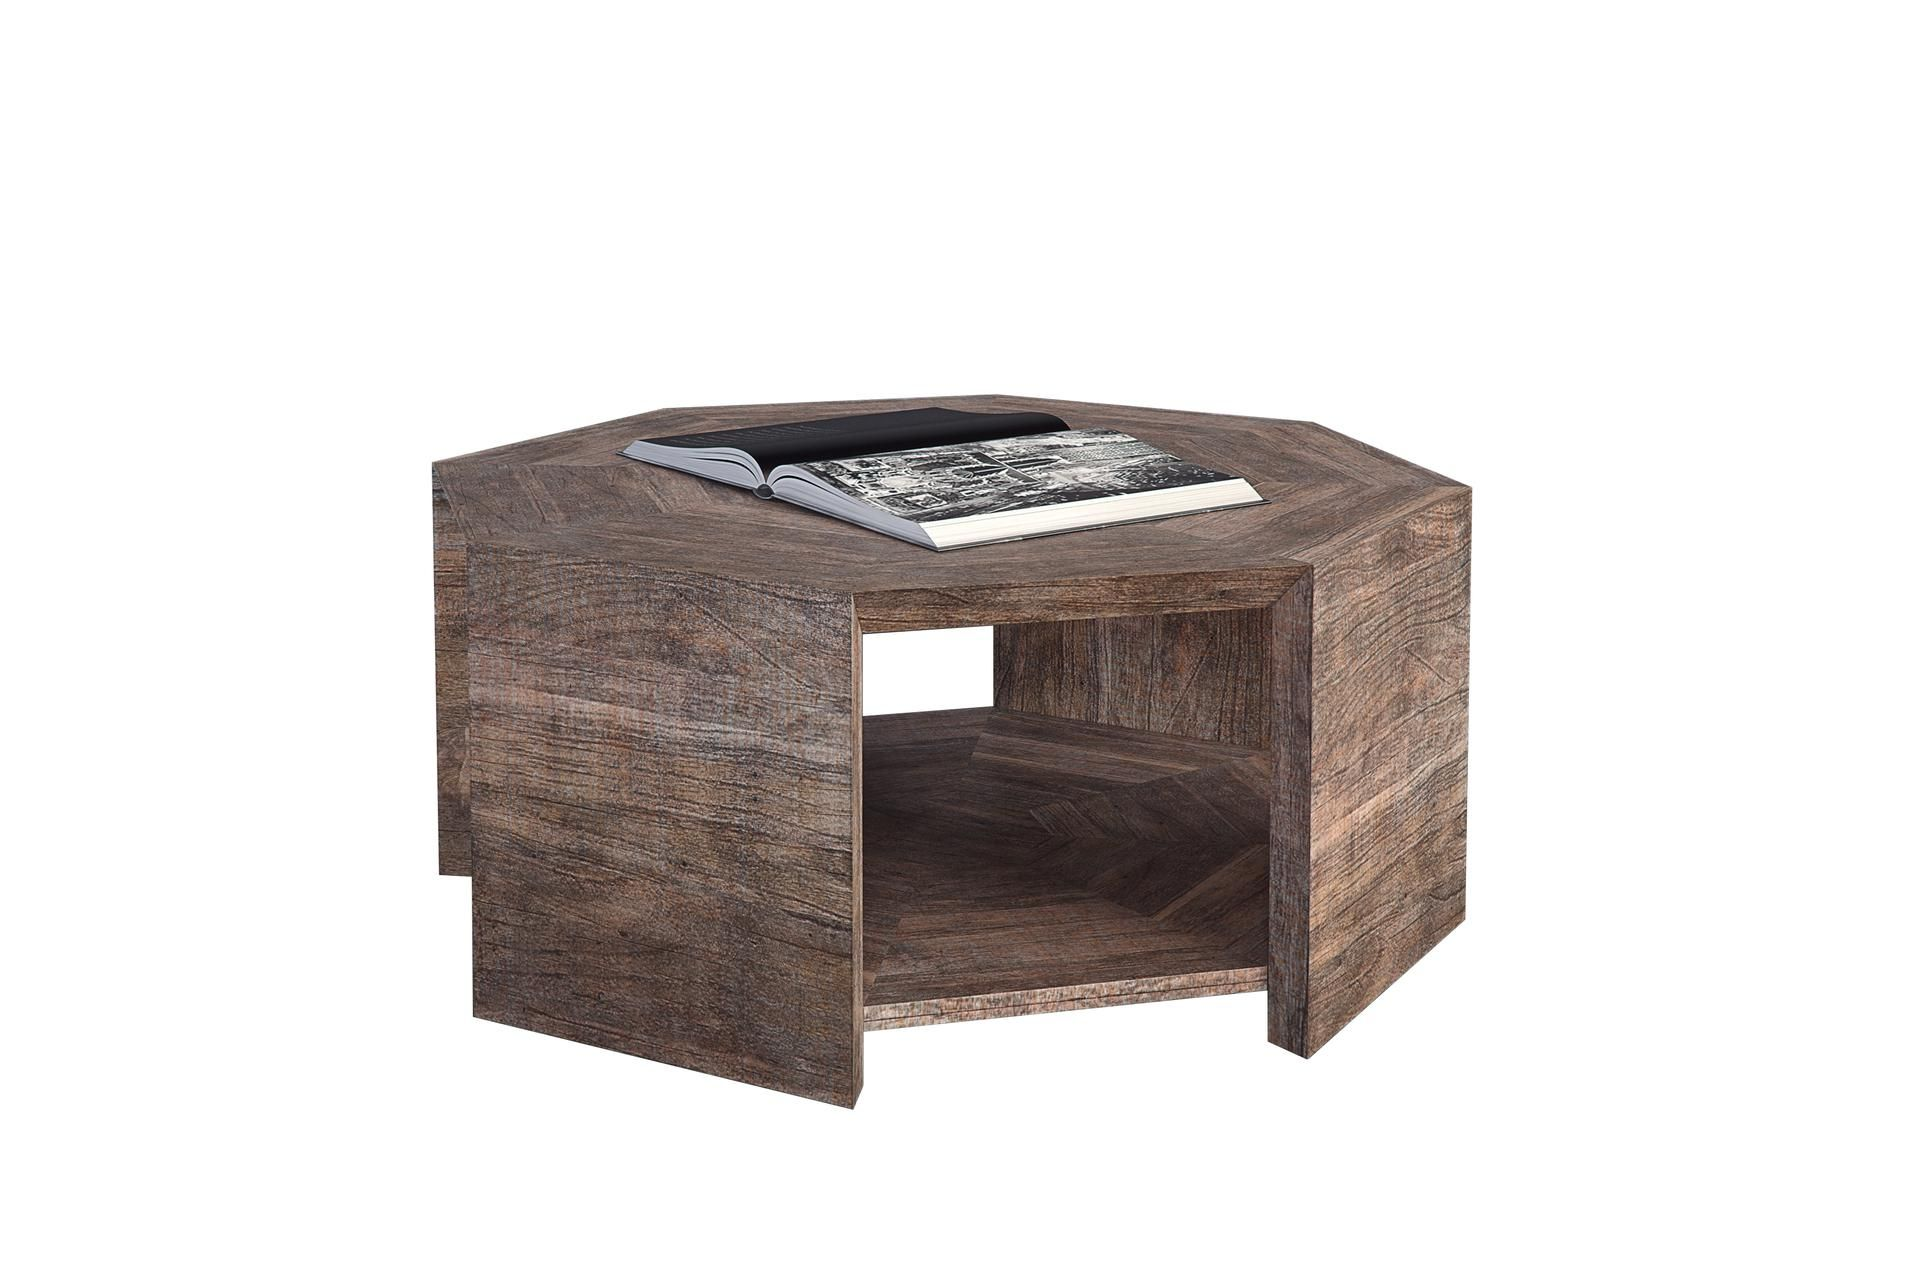 Camden Octagonal Cocktail Table Cocktail Tables Living Table Wood Dust [ 1288 x 1911 Pixel ]